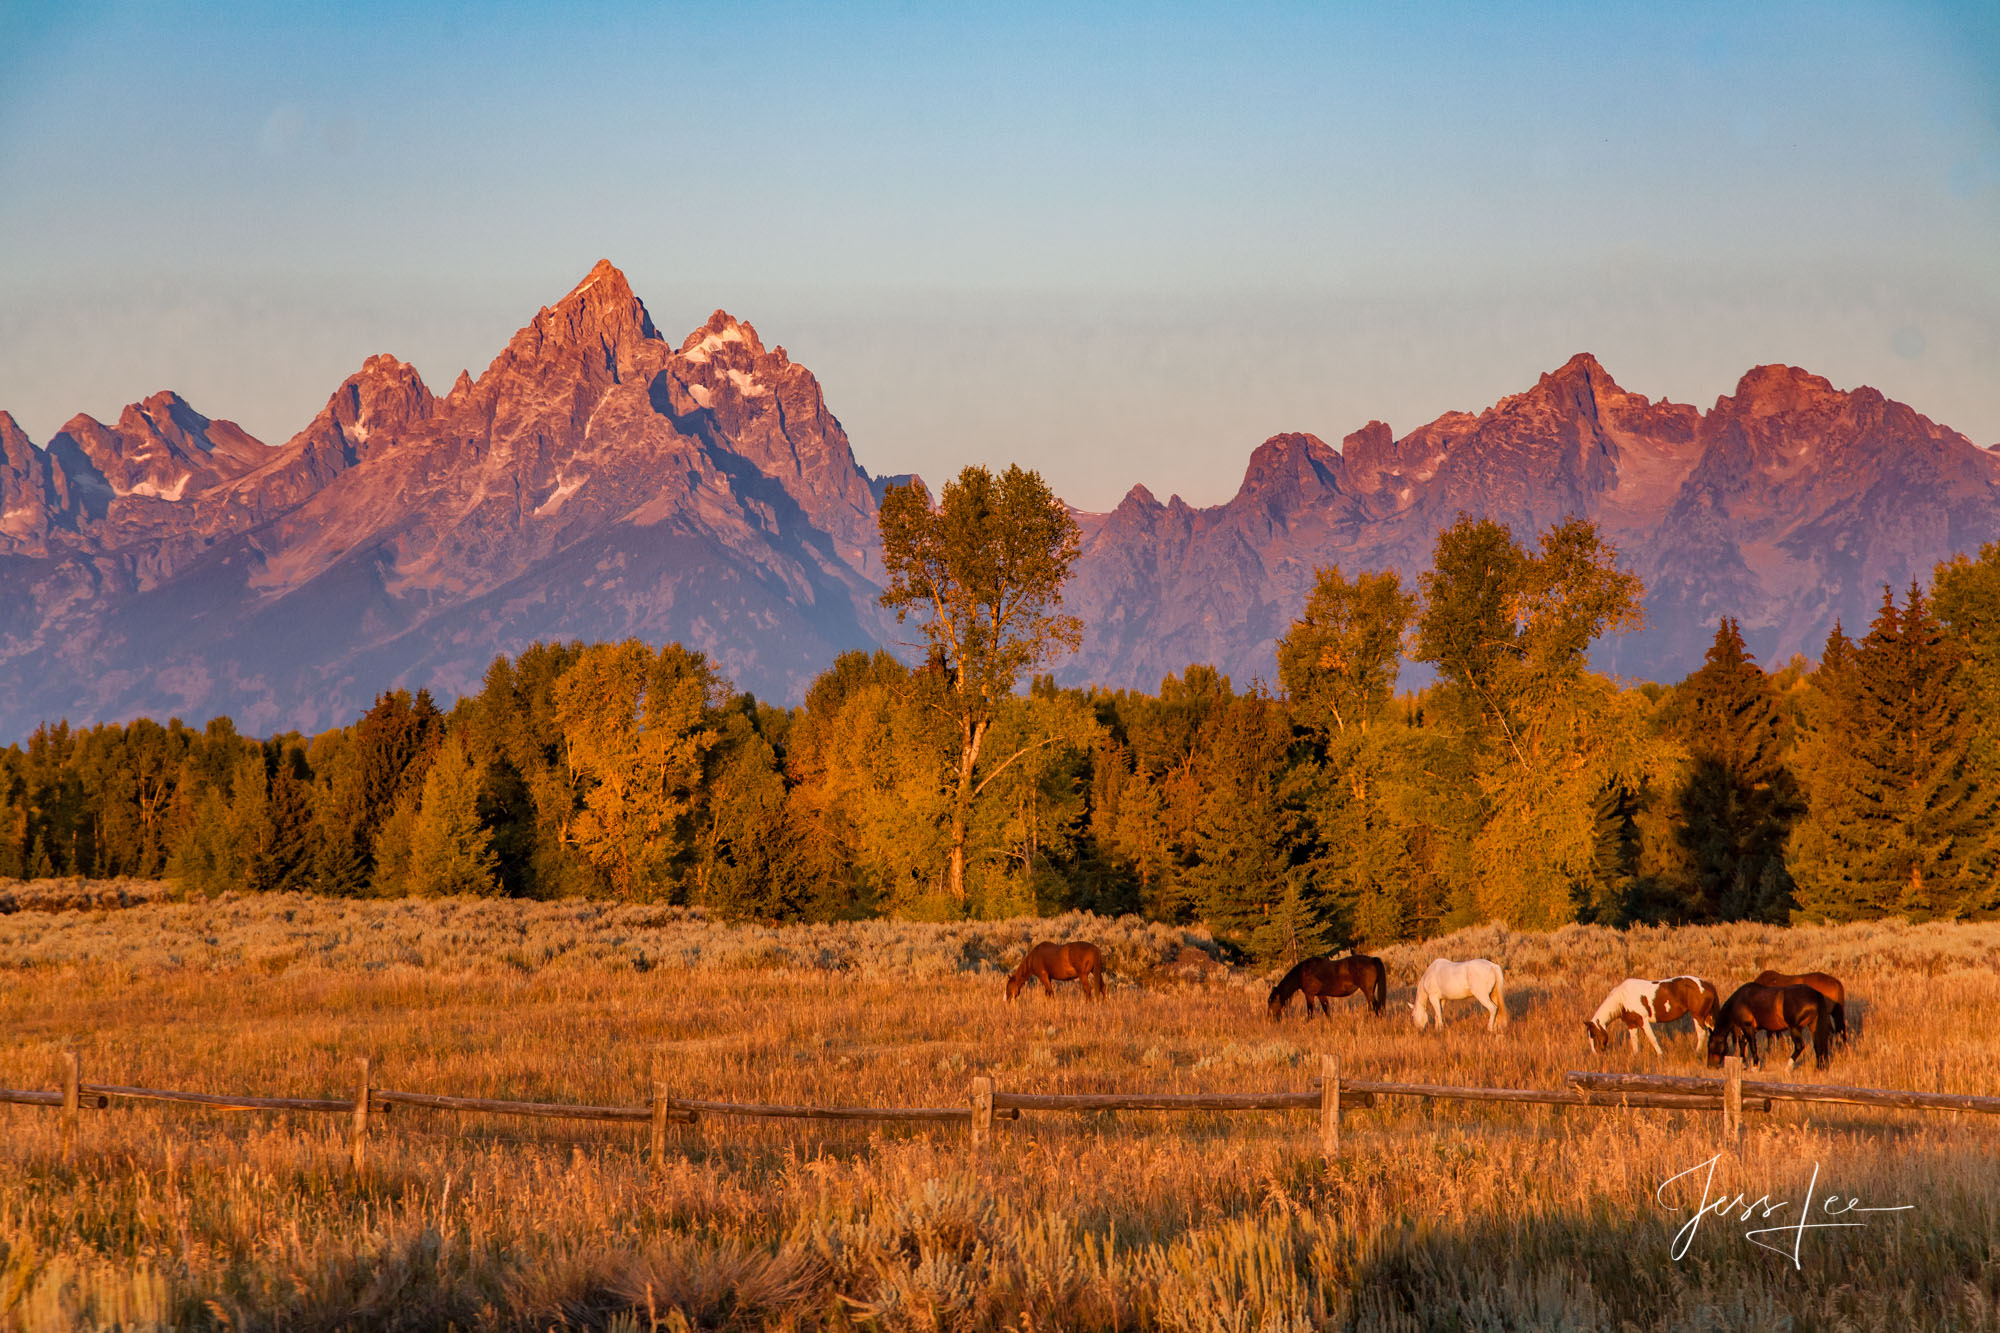 Fine Art Limited Edition Print of 250 Sunrise hitting the tops of the Teton Mountain Range as a herd of horses peacefully graze...